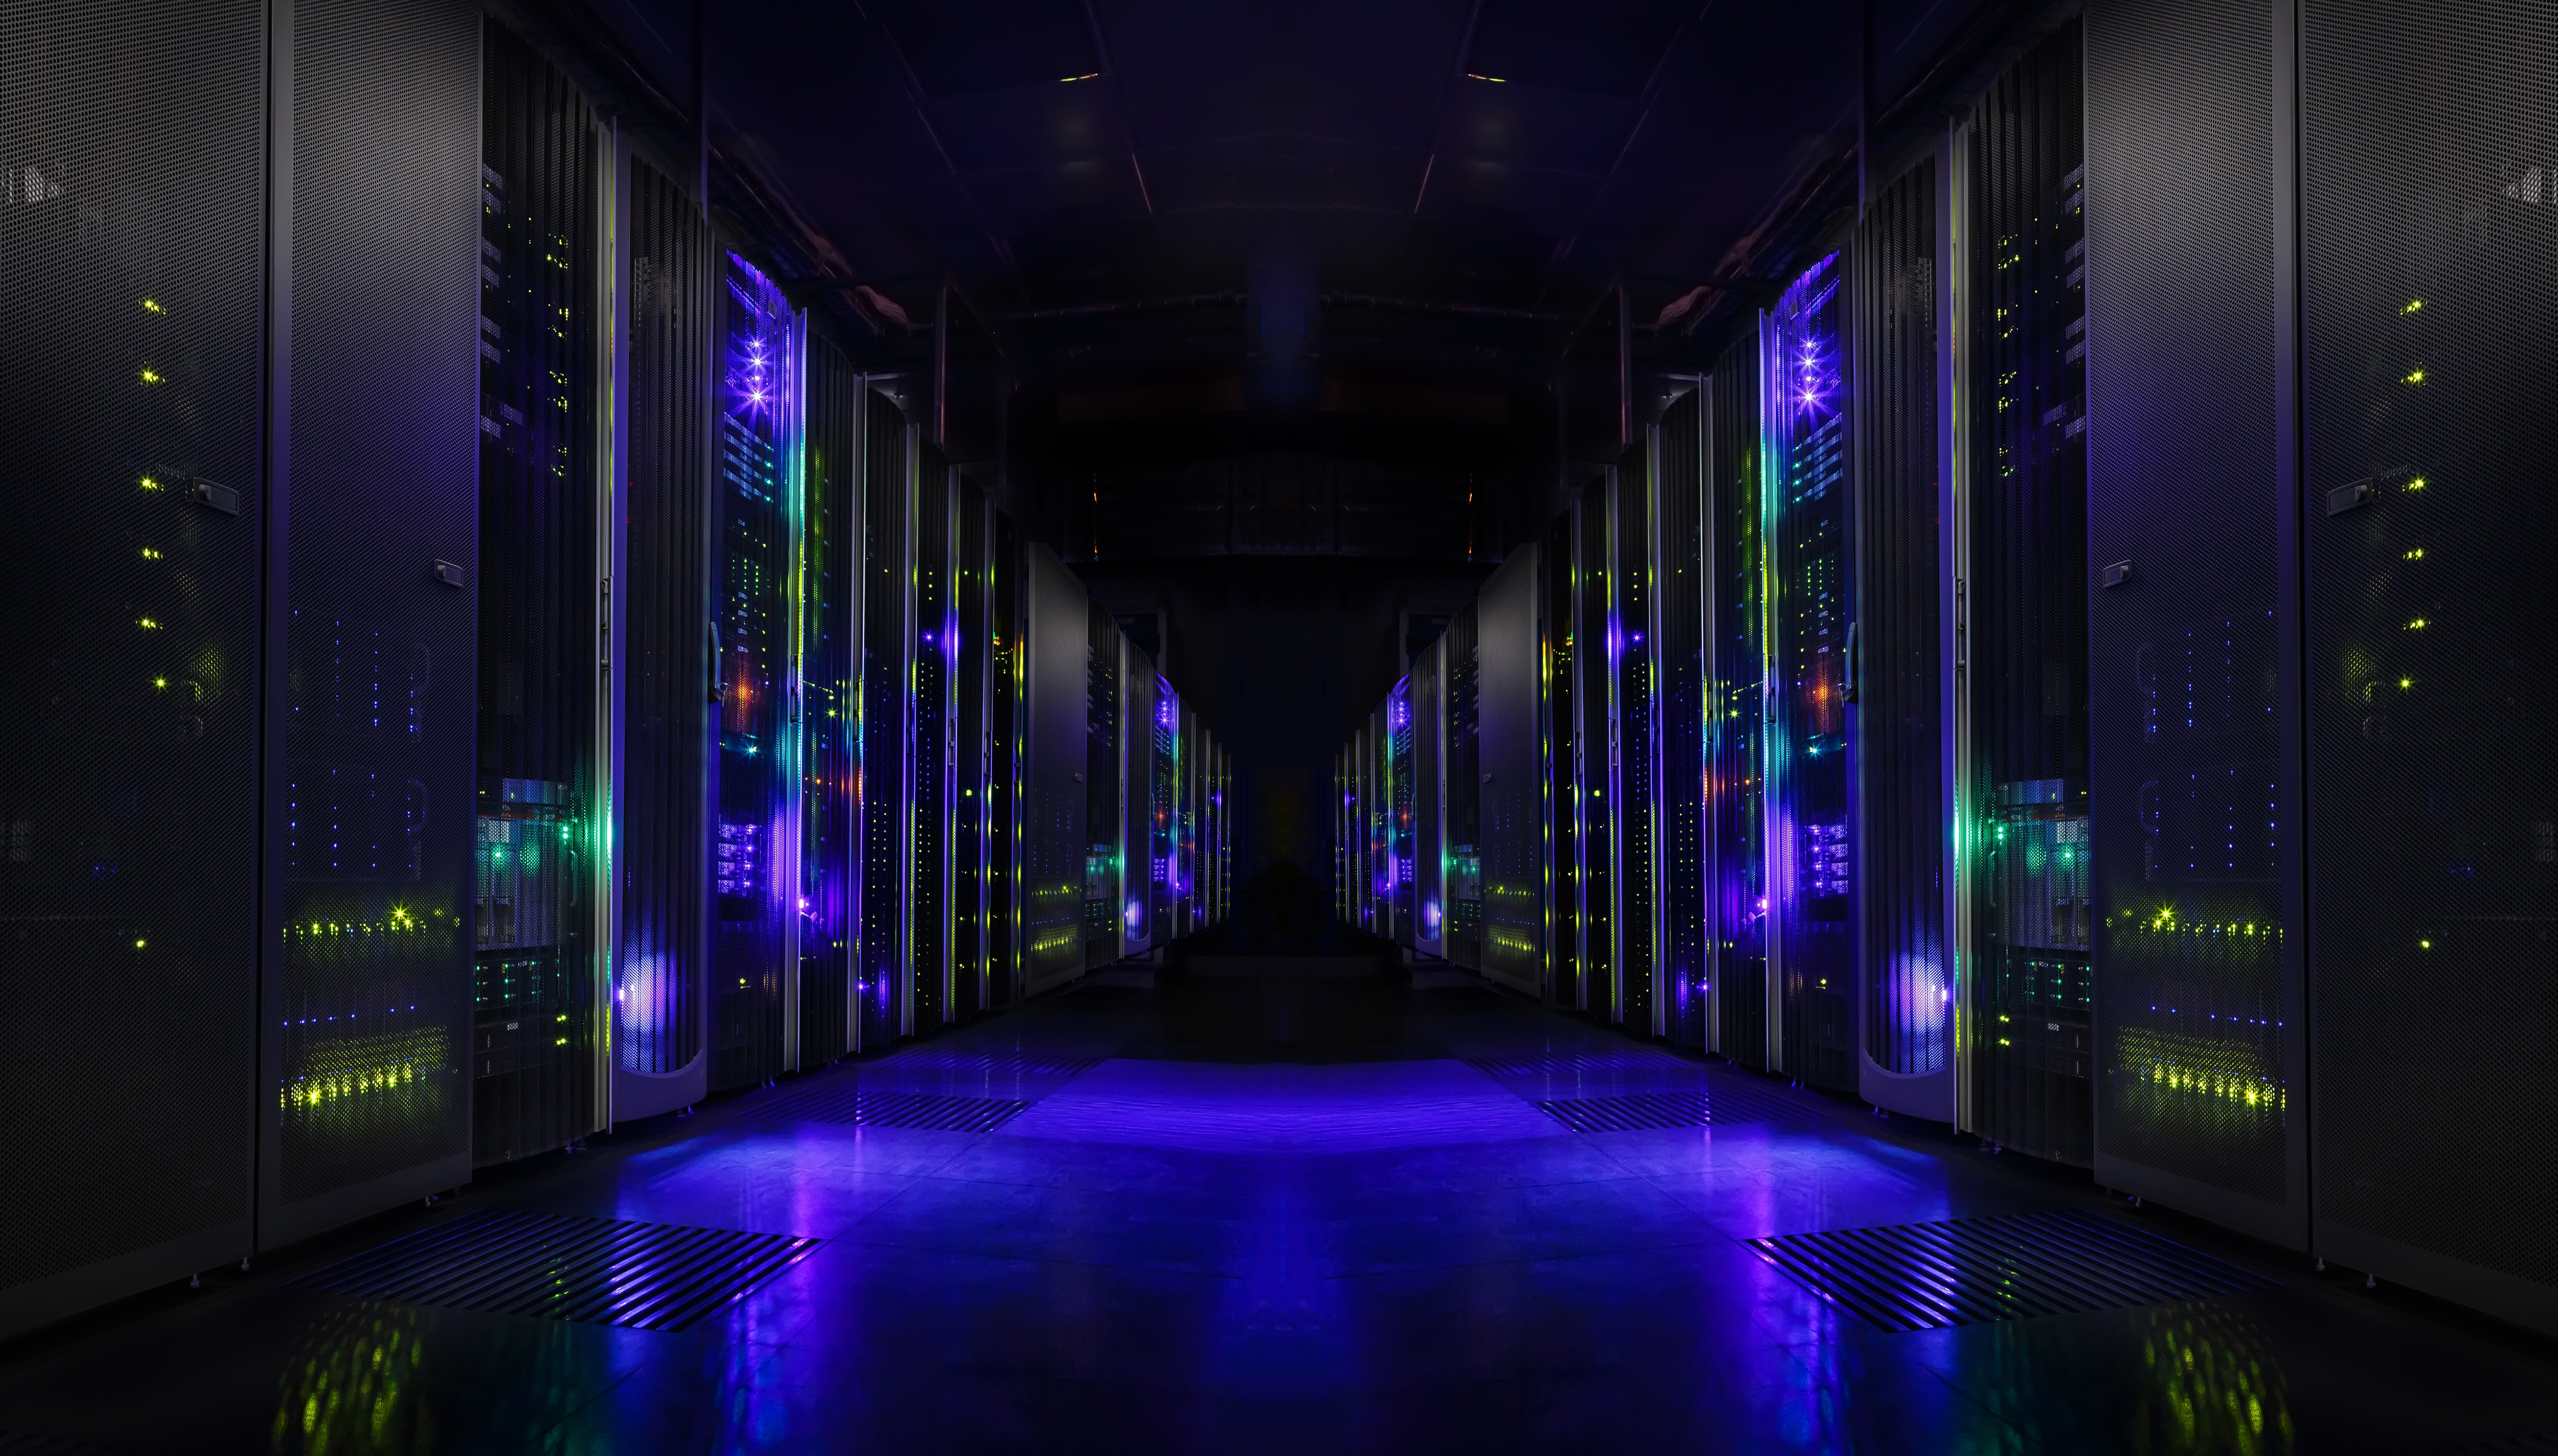 Keeping the lights on through times of darkness - why data centres are crucial in the fight against Covid-19